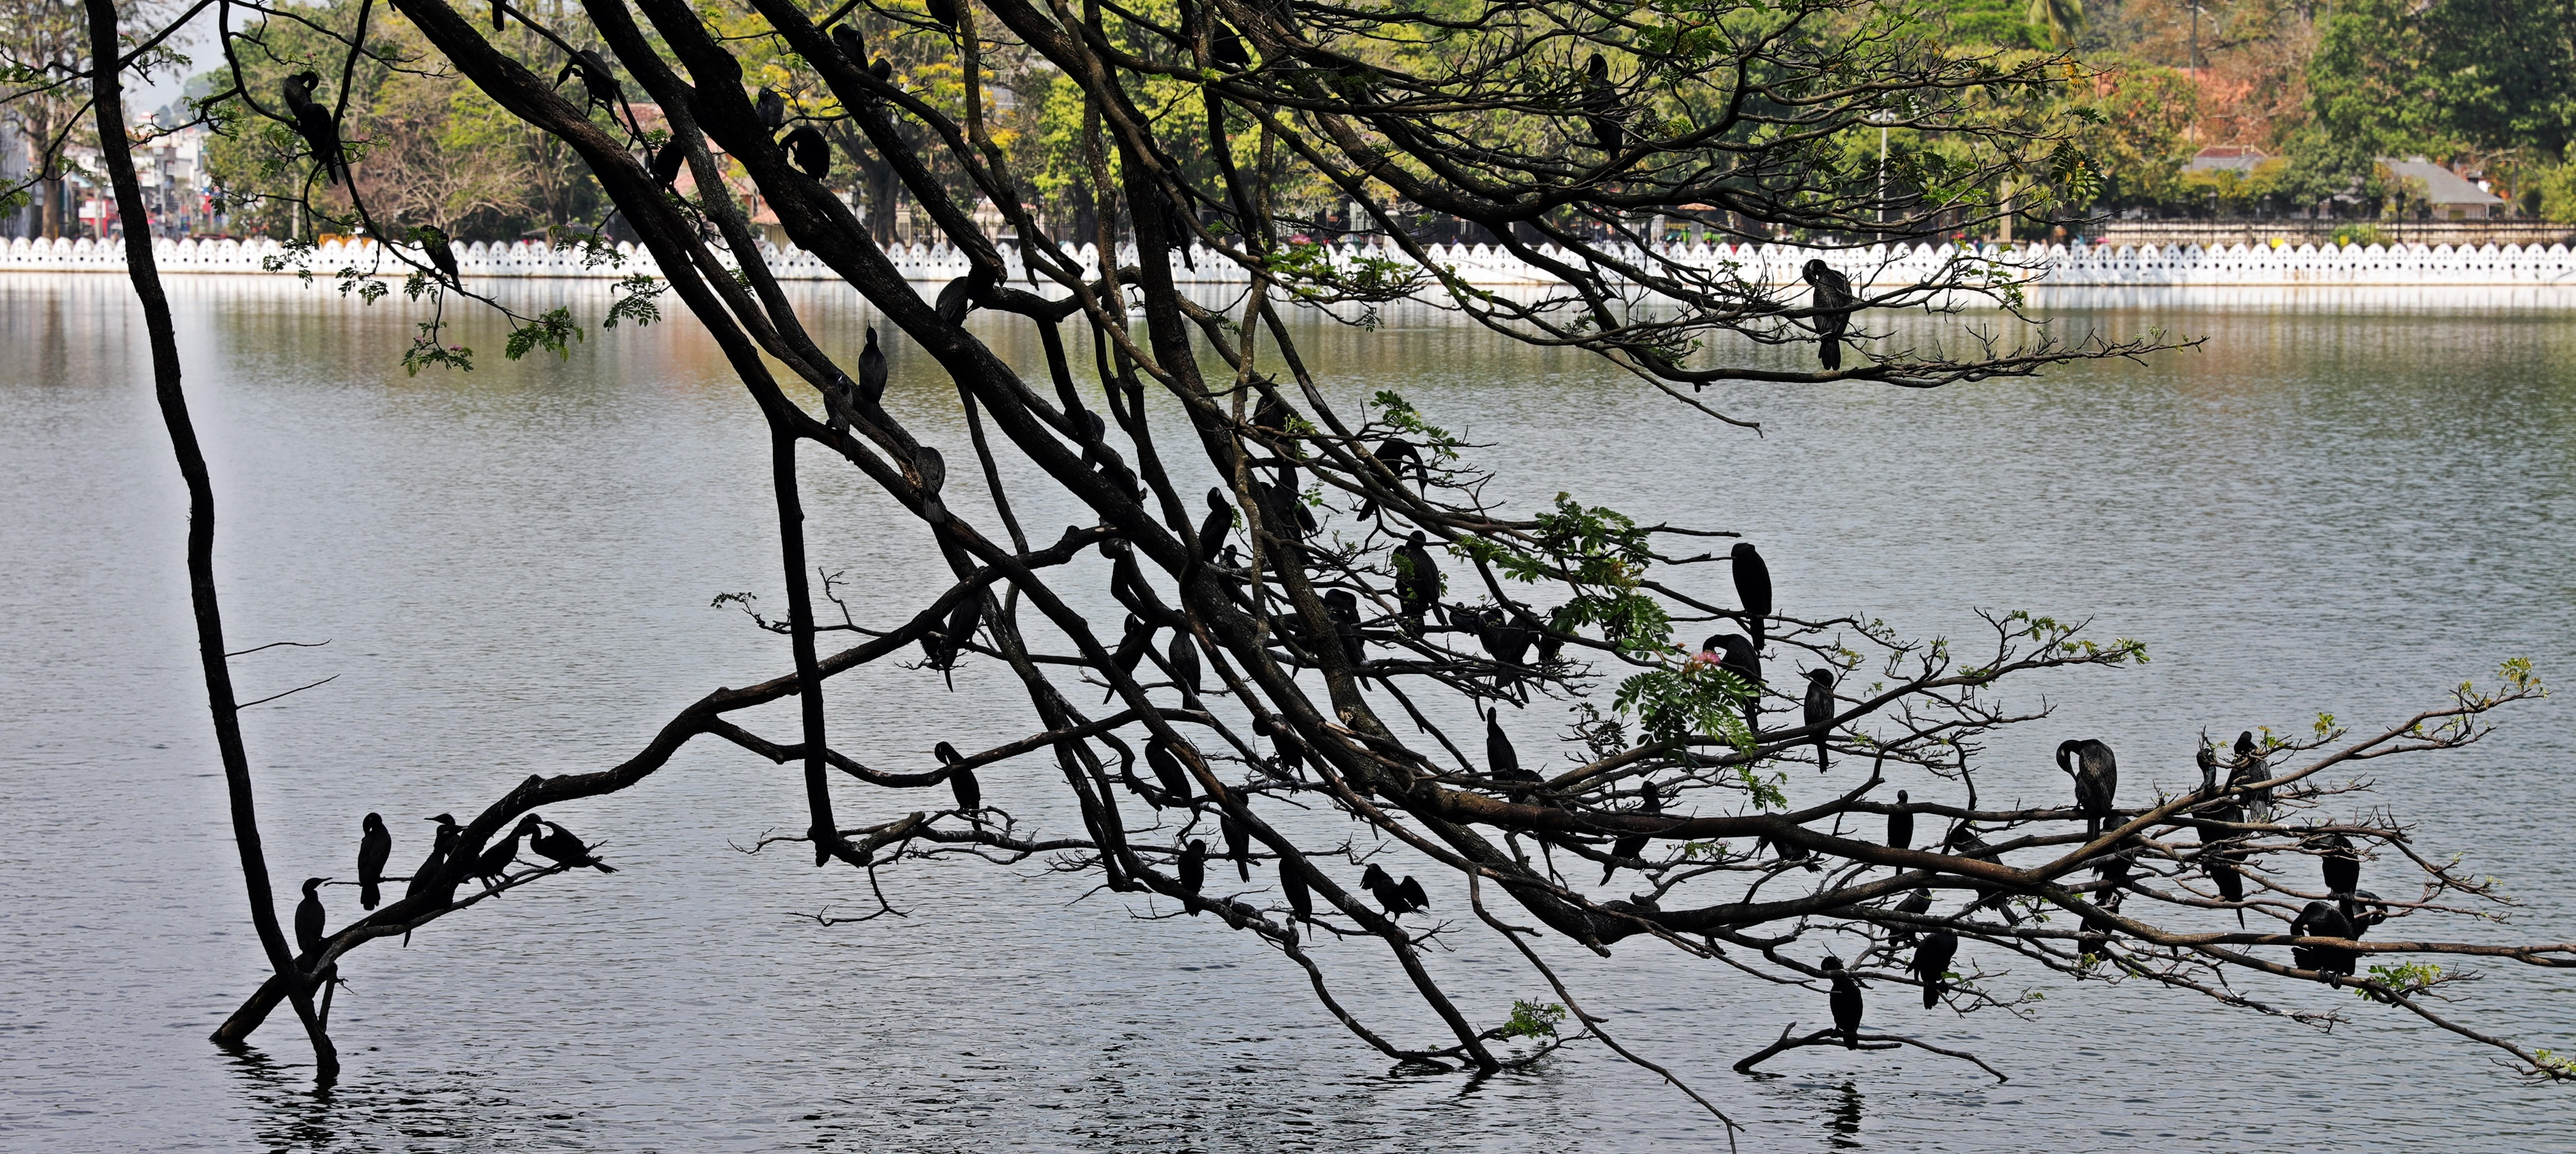 Cormorant convention, Kandy